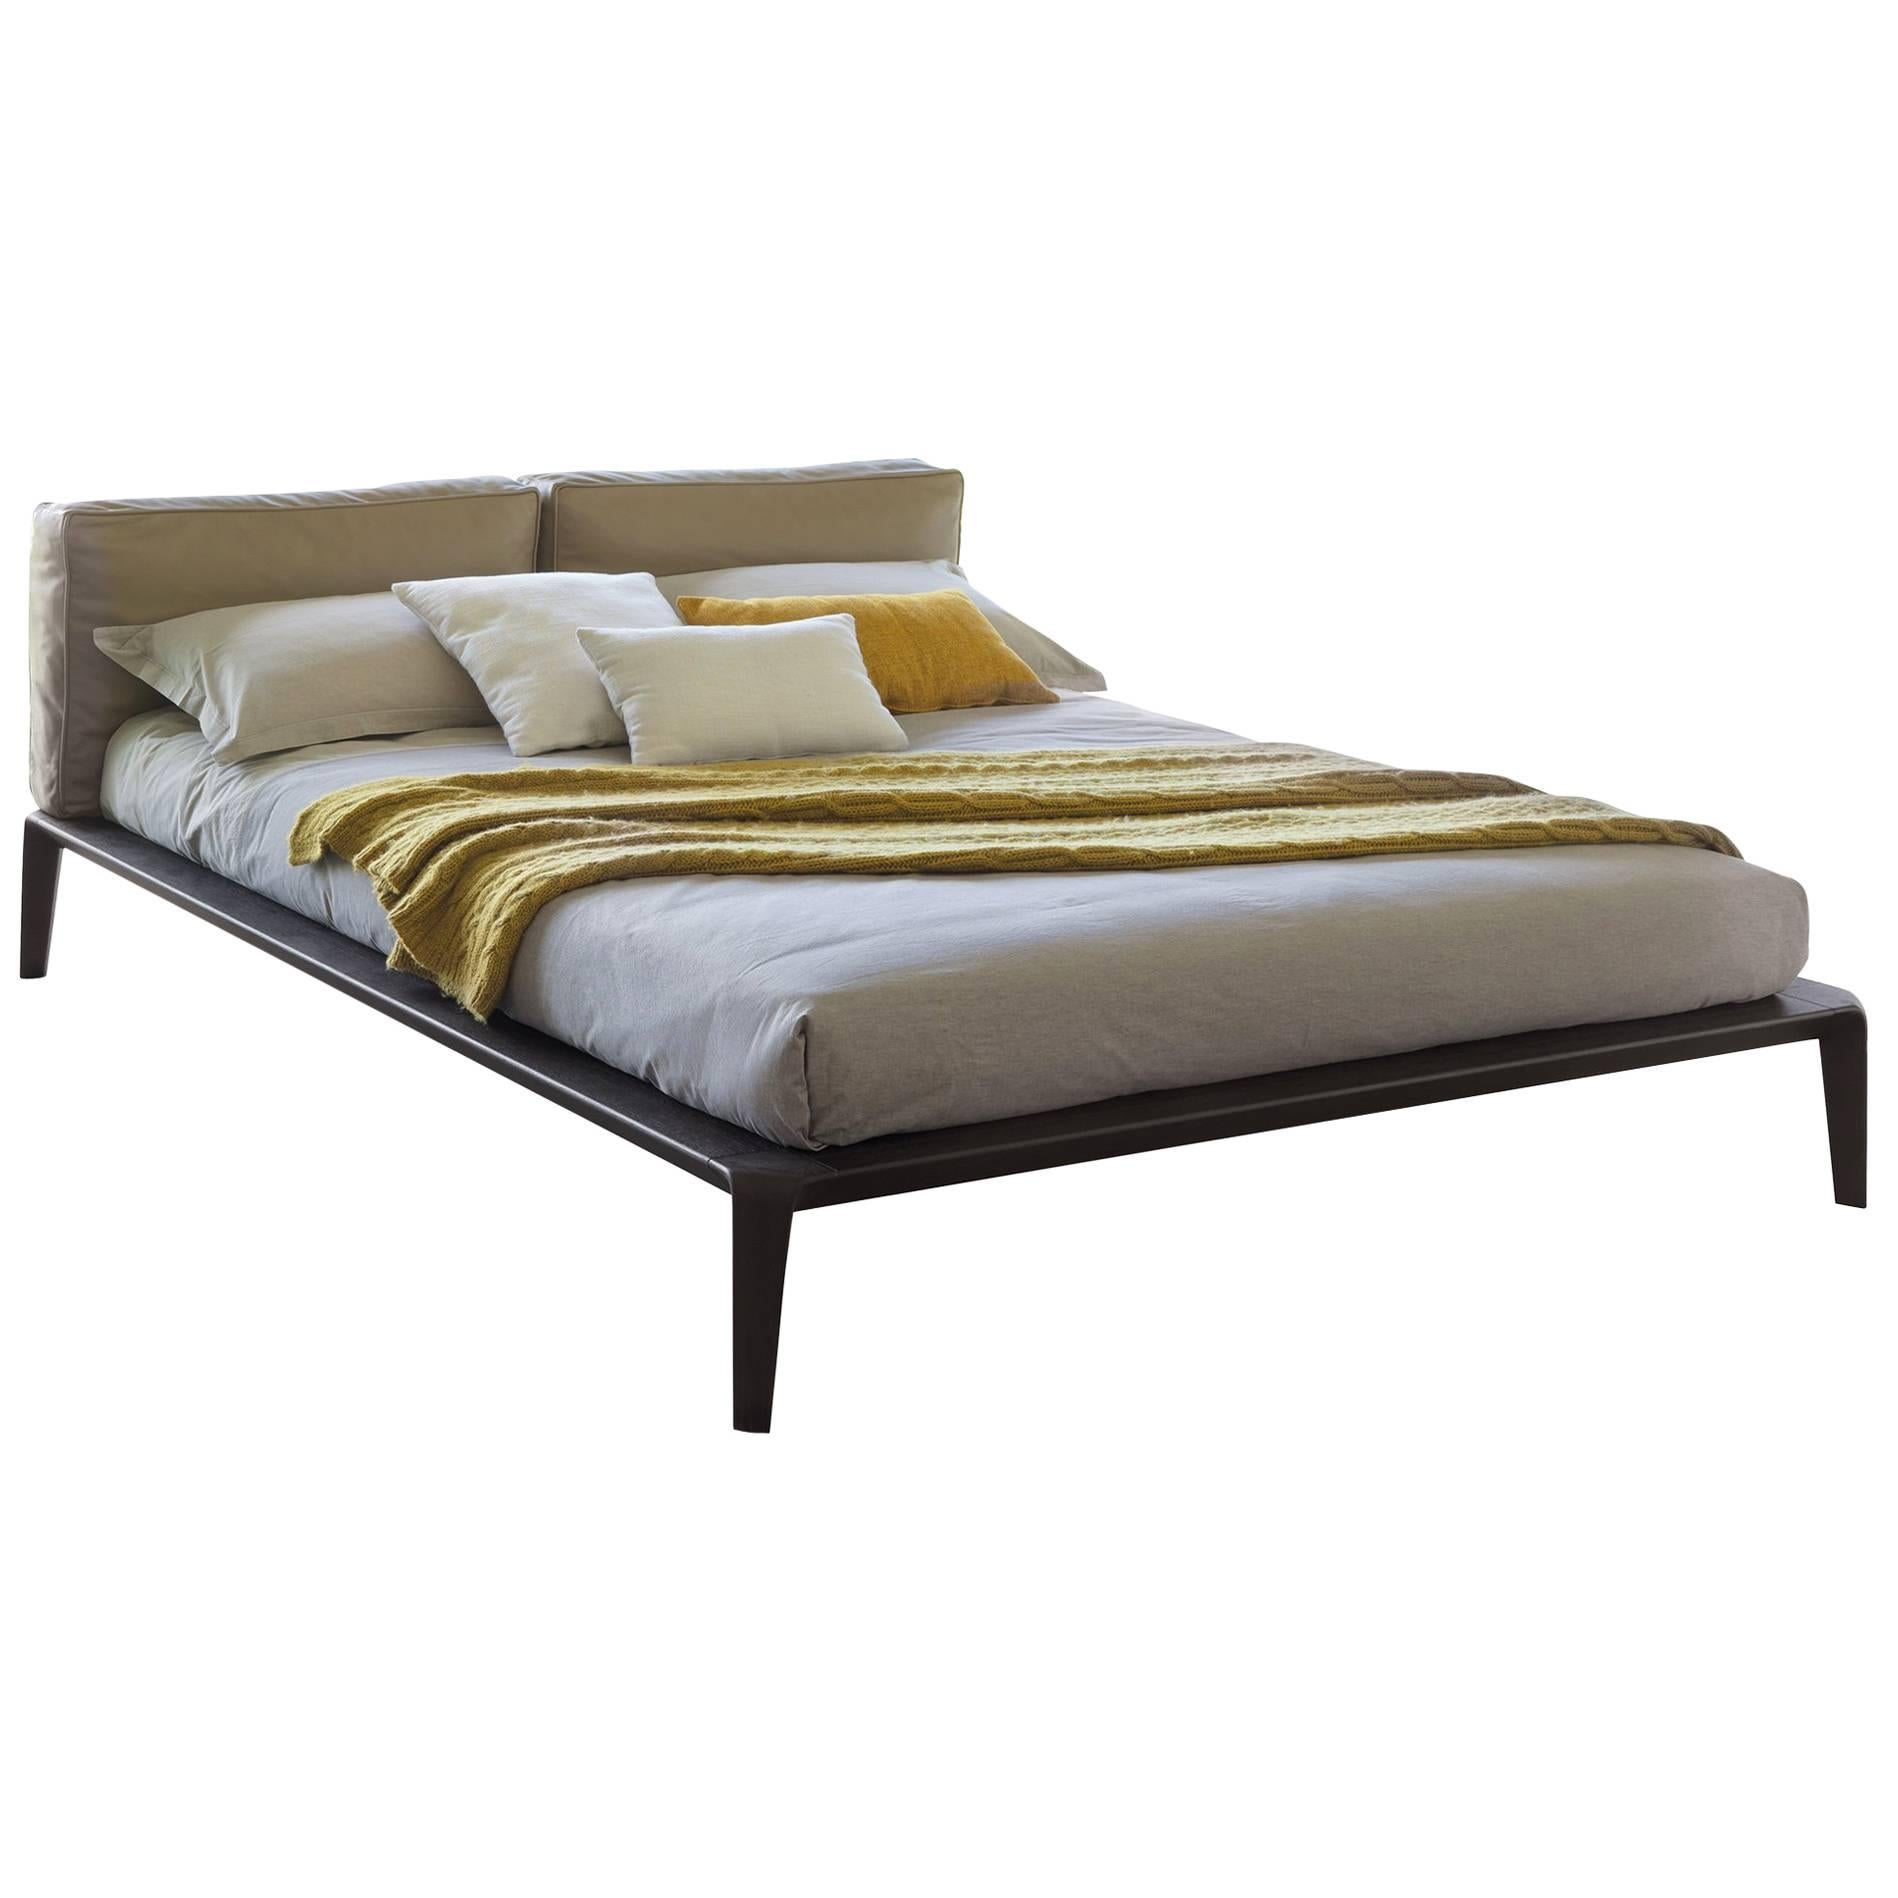 Bon Italian Contemporary Bed, Leather Headboard, Wood Bed Frame, Made In Italy  For Sale